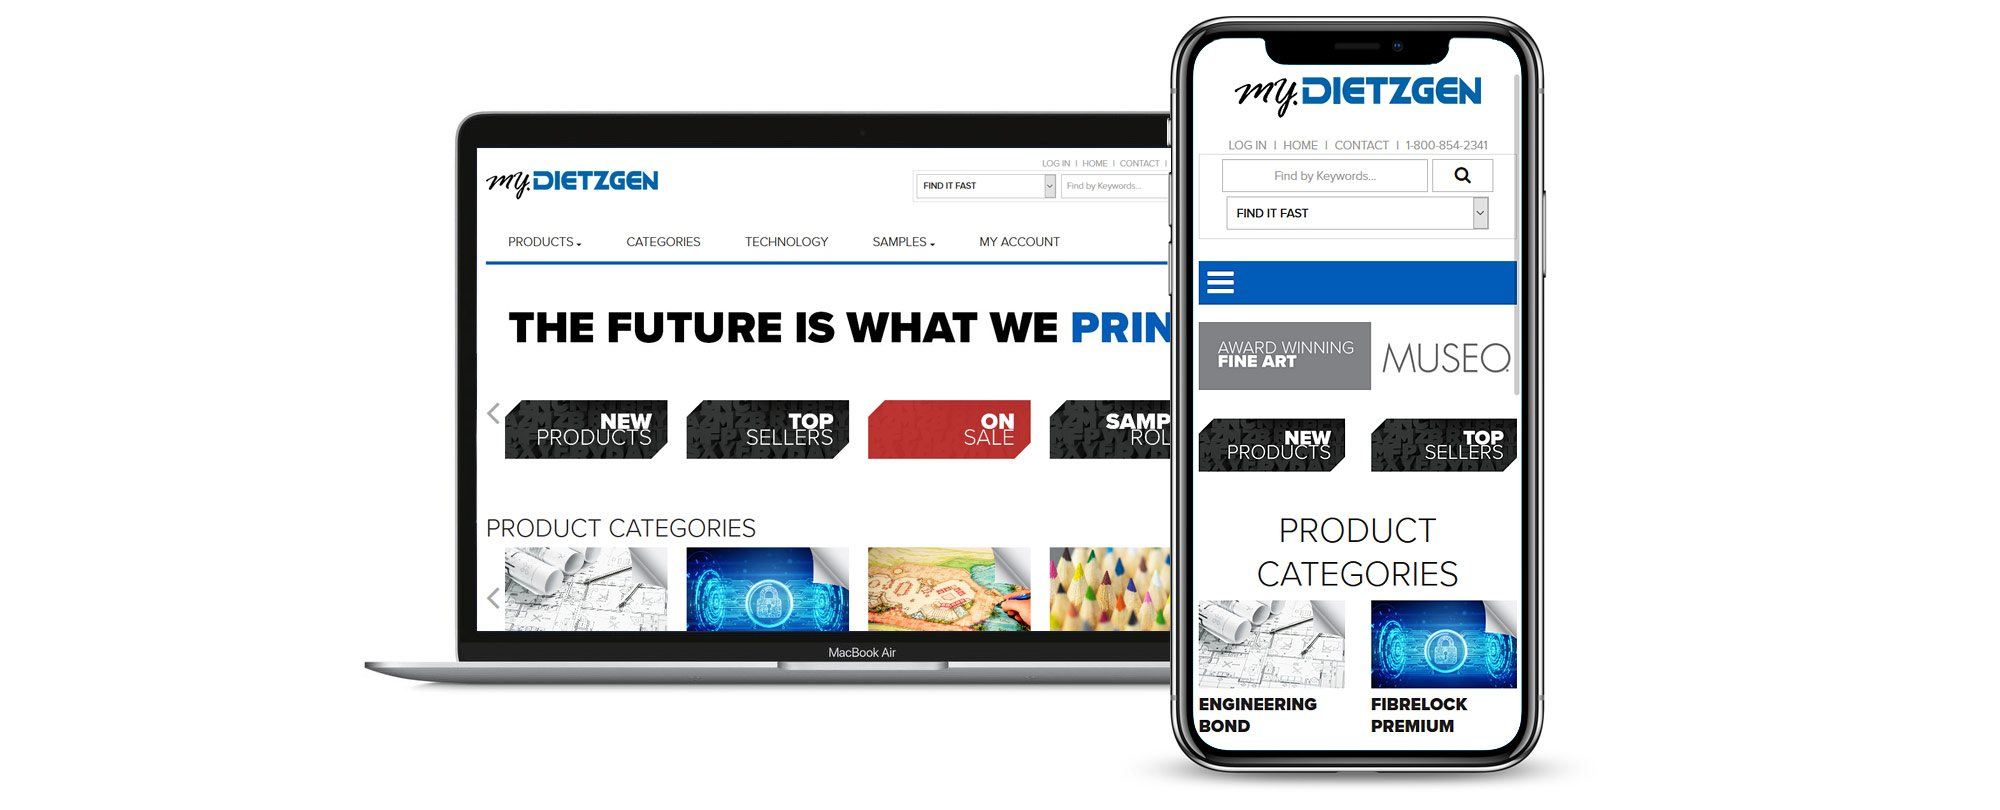 Dietzgen website on devices